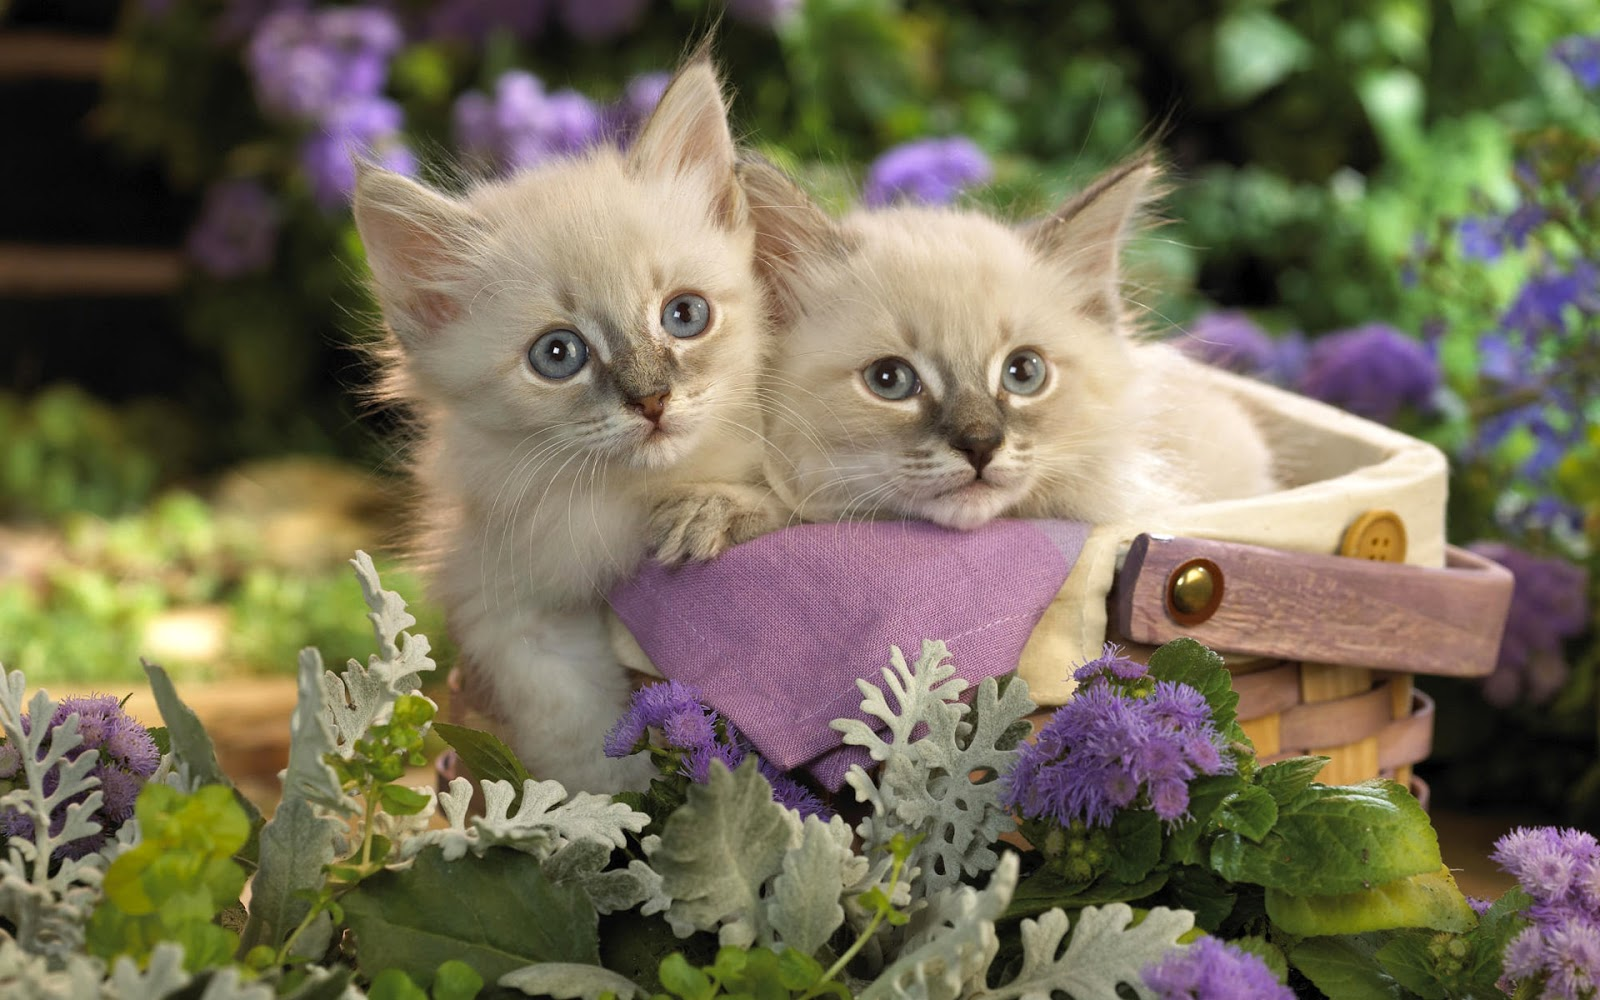 Cute Wallpapers Of All Kind Of Animals Lovely Wallpapers Cute Animals Wallpapers 2012